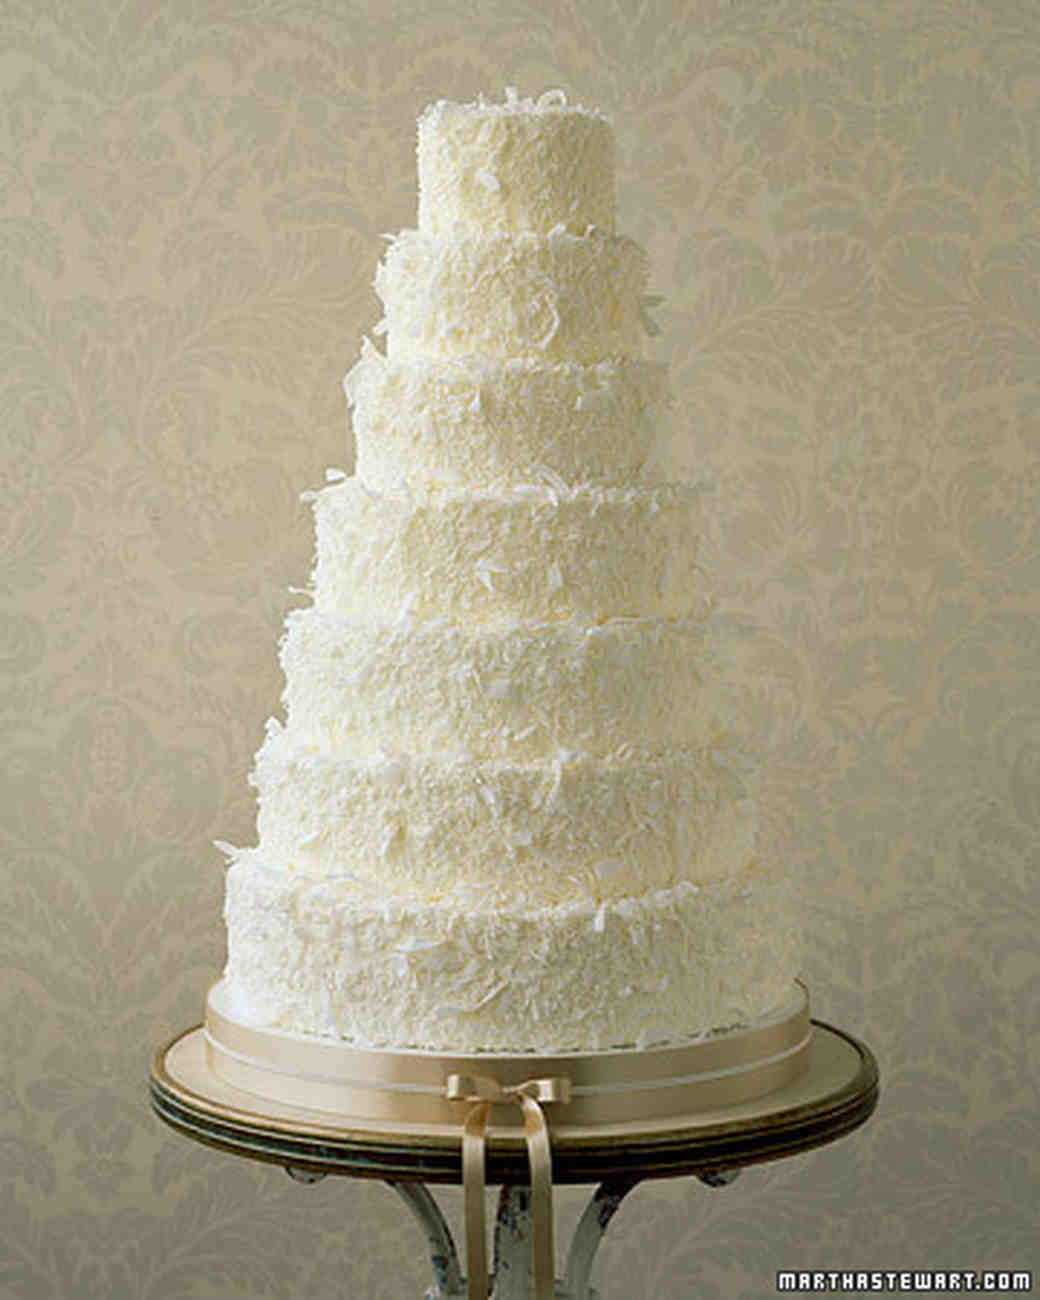 26 Chocolate Wedding Cake Ideas That Will Blow Your Guests  Minds     Coconut Wedding Cakes